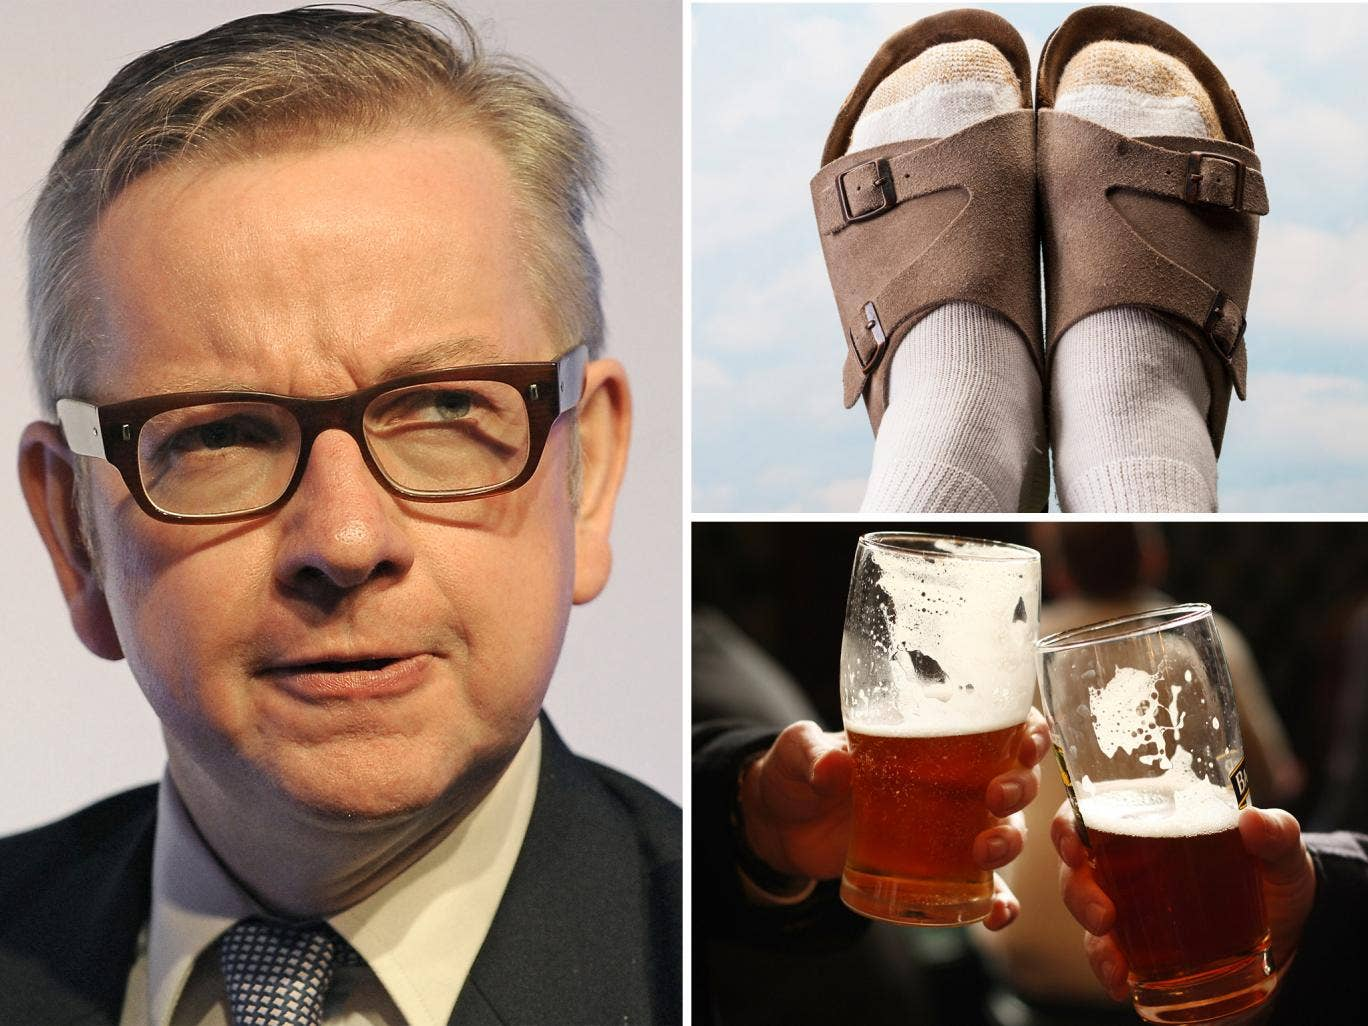 Socks and sandals and warm beer were among the British values suggested by Twitter users in response to Michael Gove's announcement